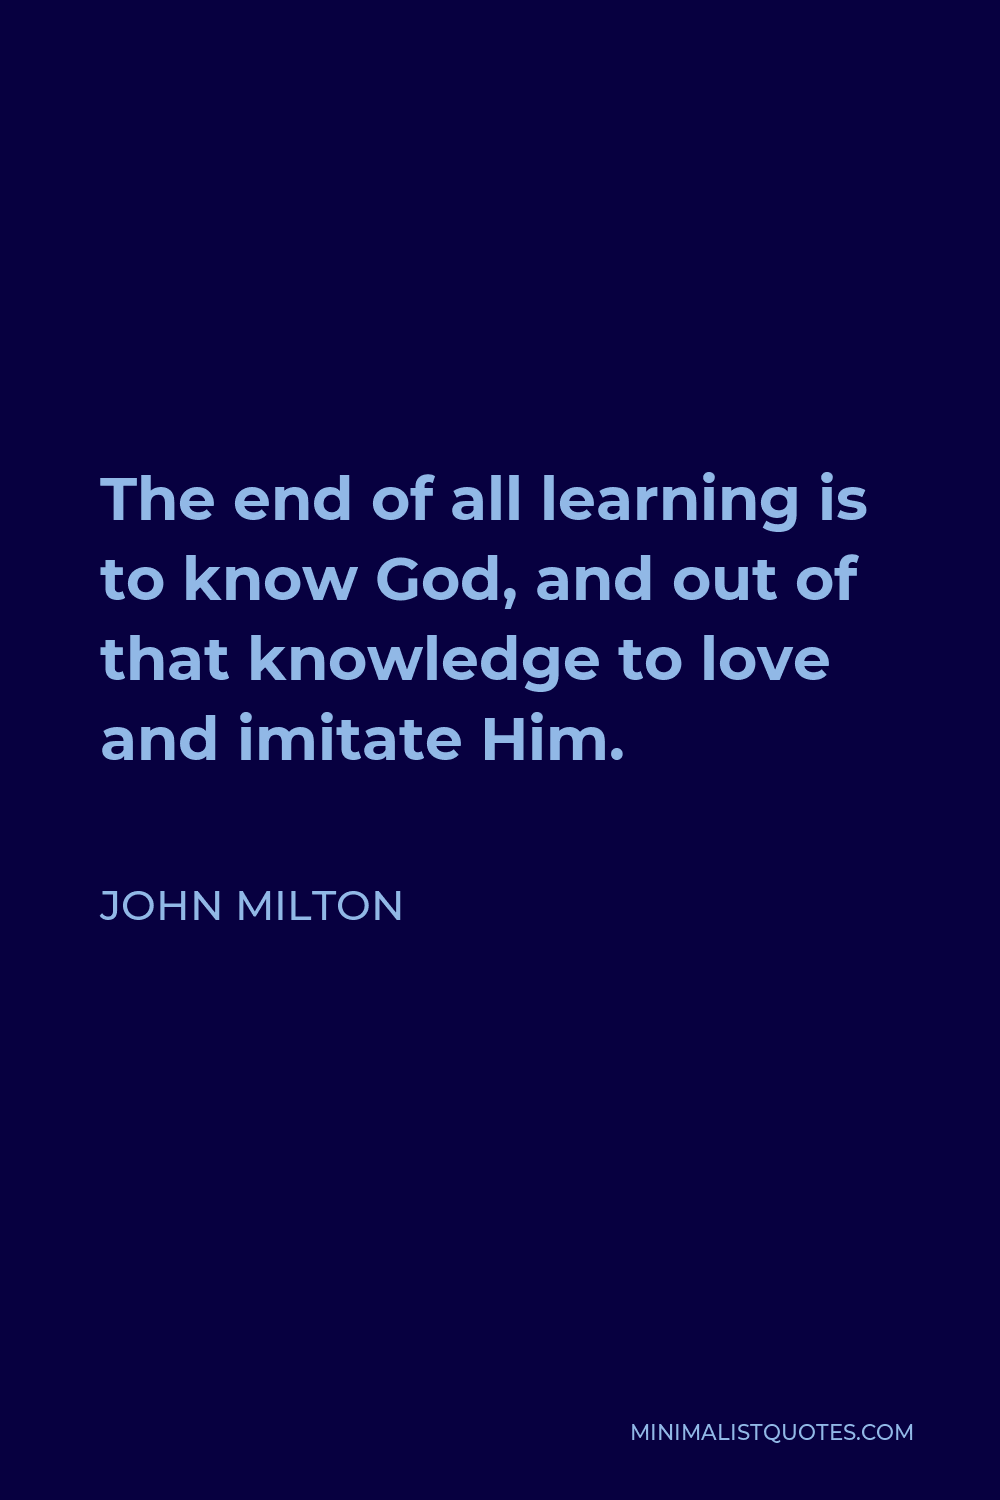 John Milton Quote - The end of all learning is to know God, and out of that knowledge to love and imitate Him.